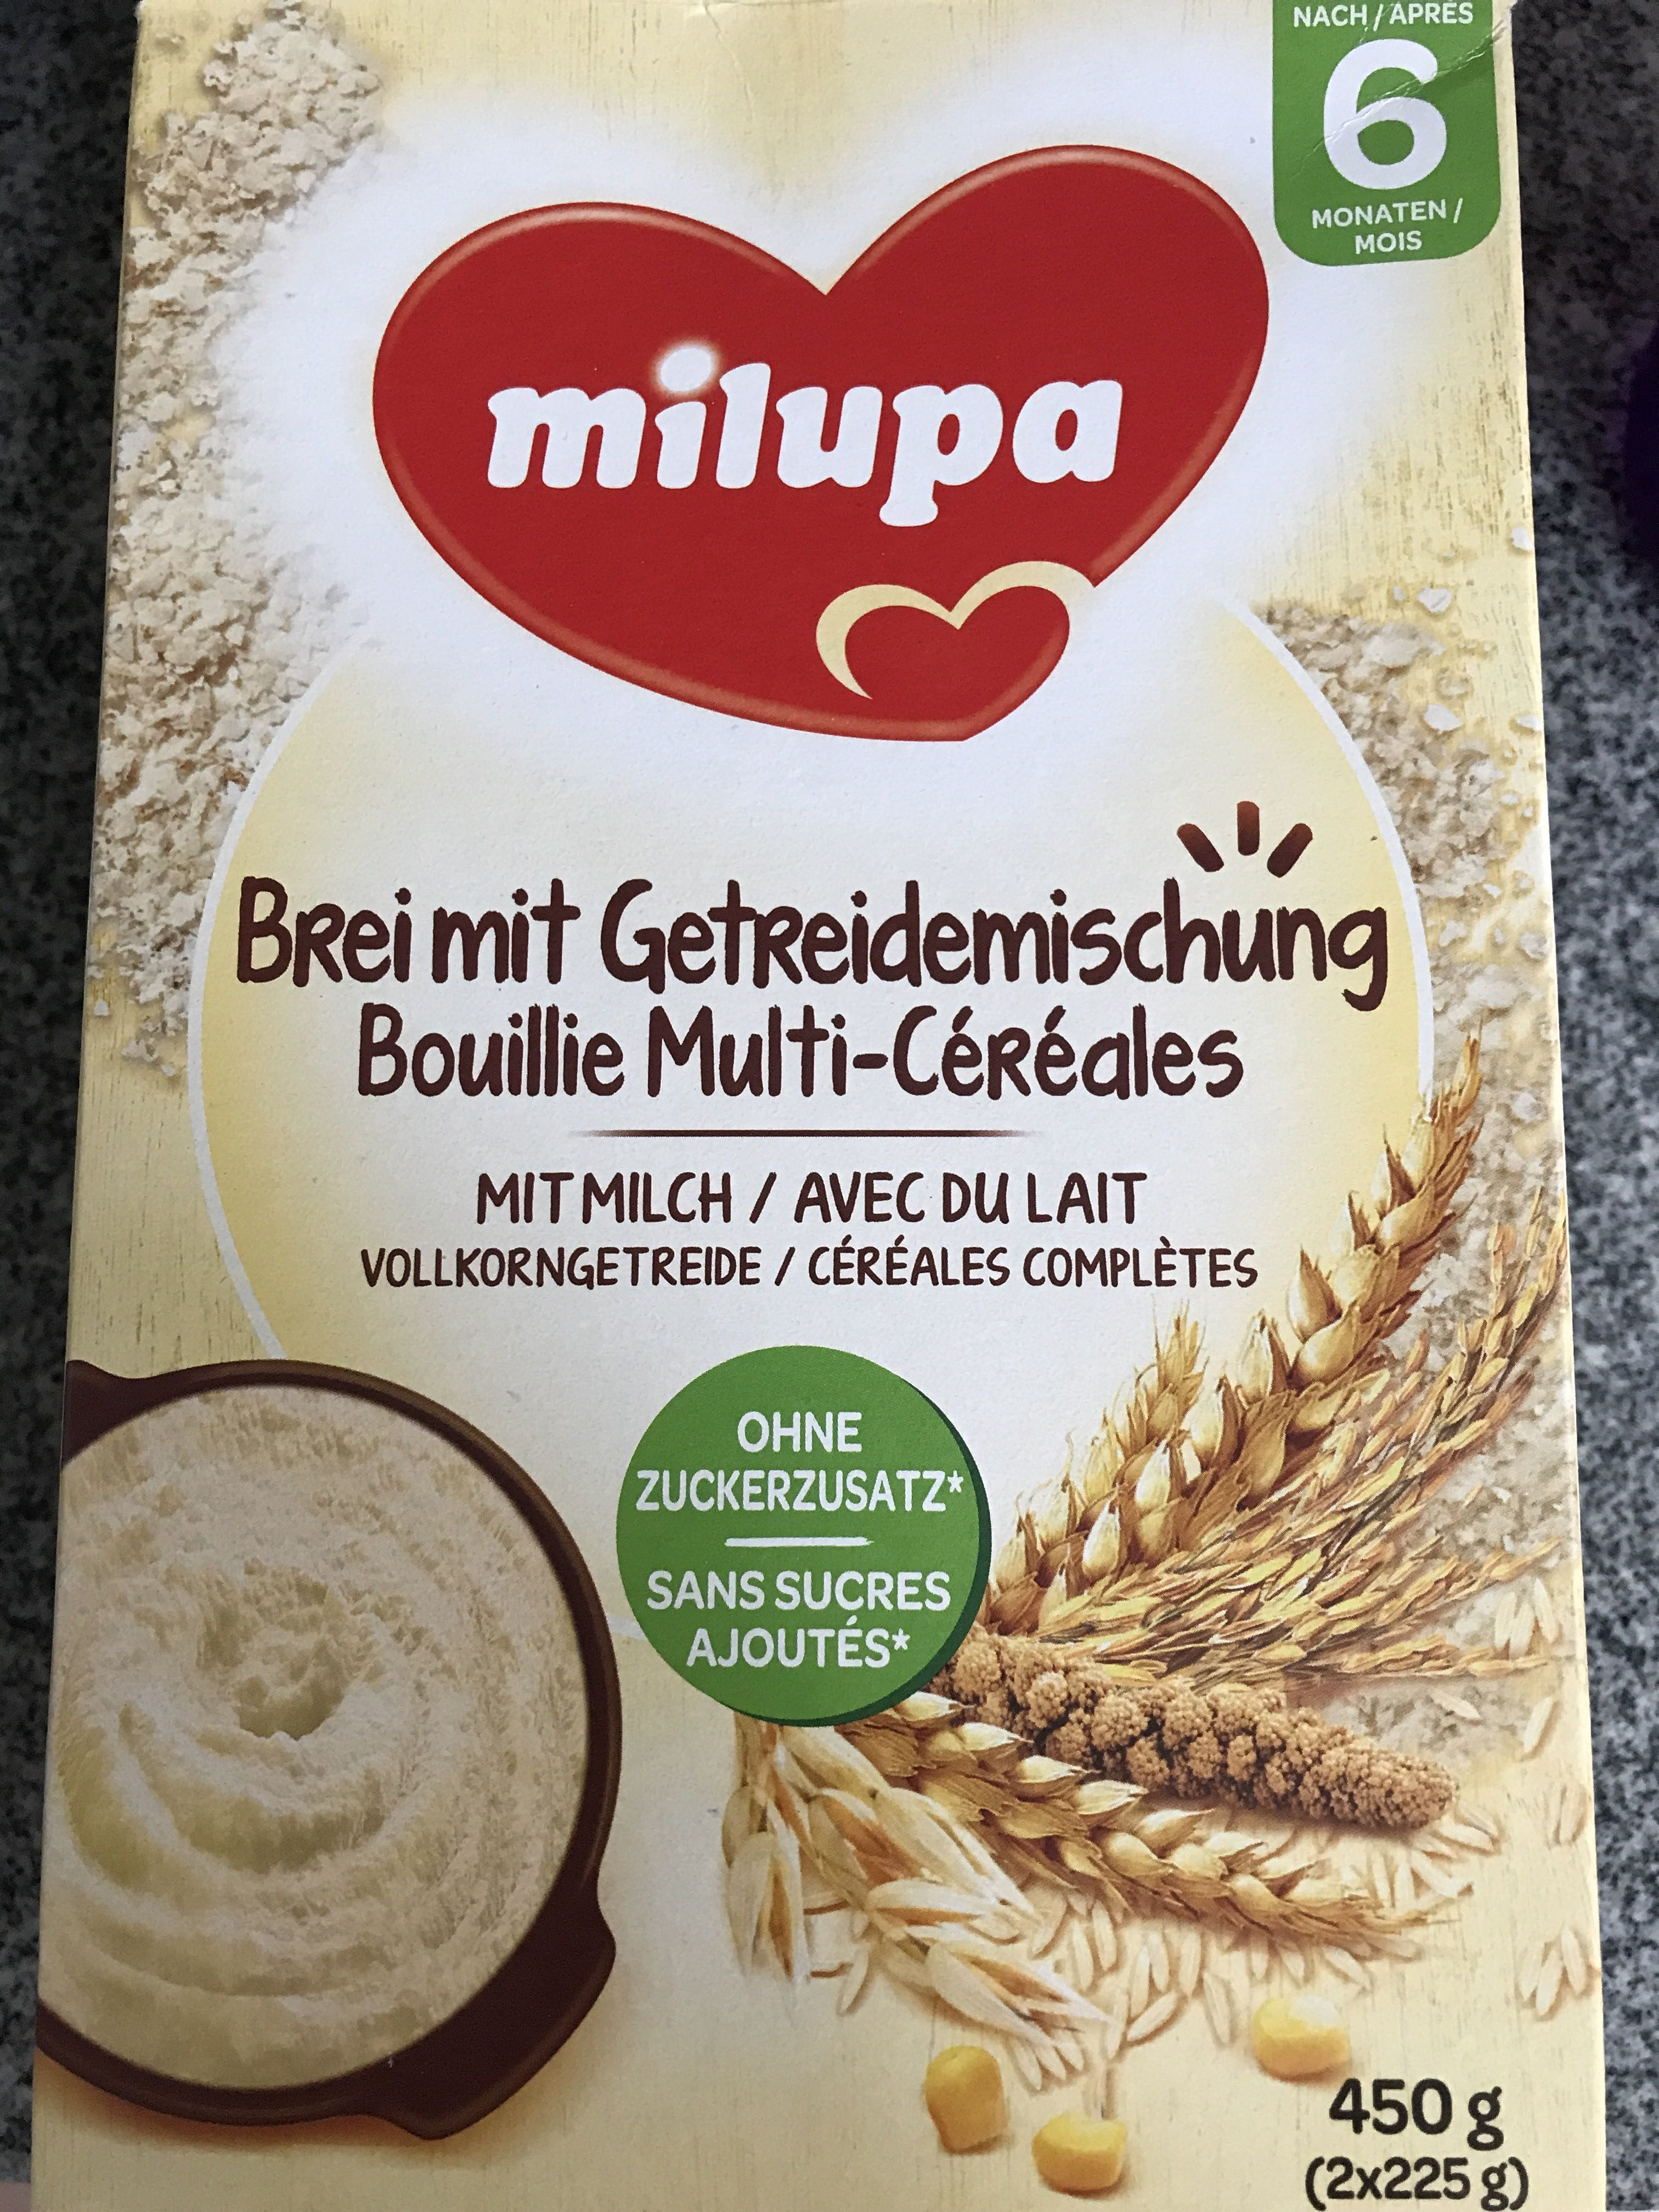 Bouillie multi-cereales - Product - fr